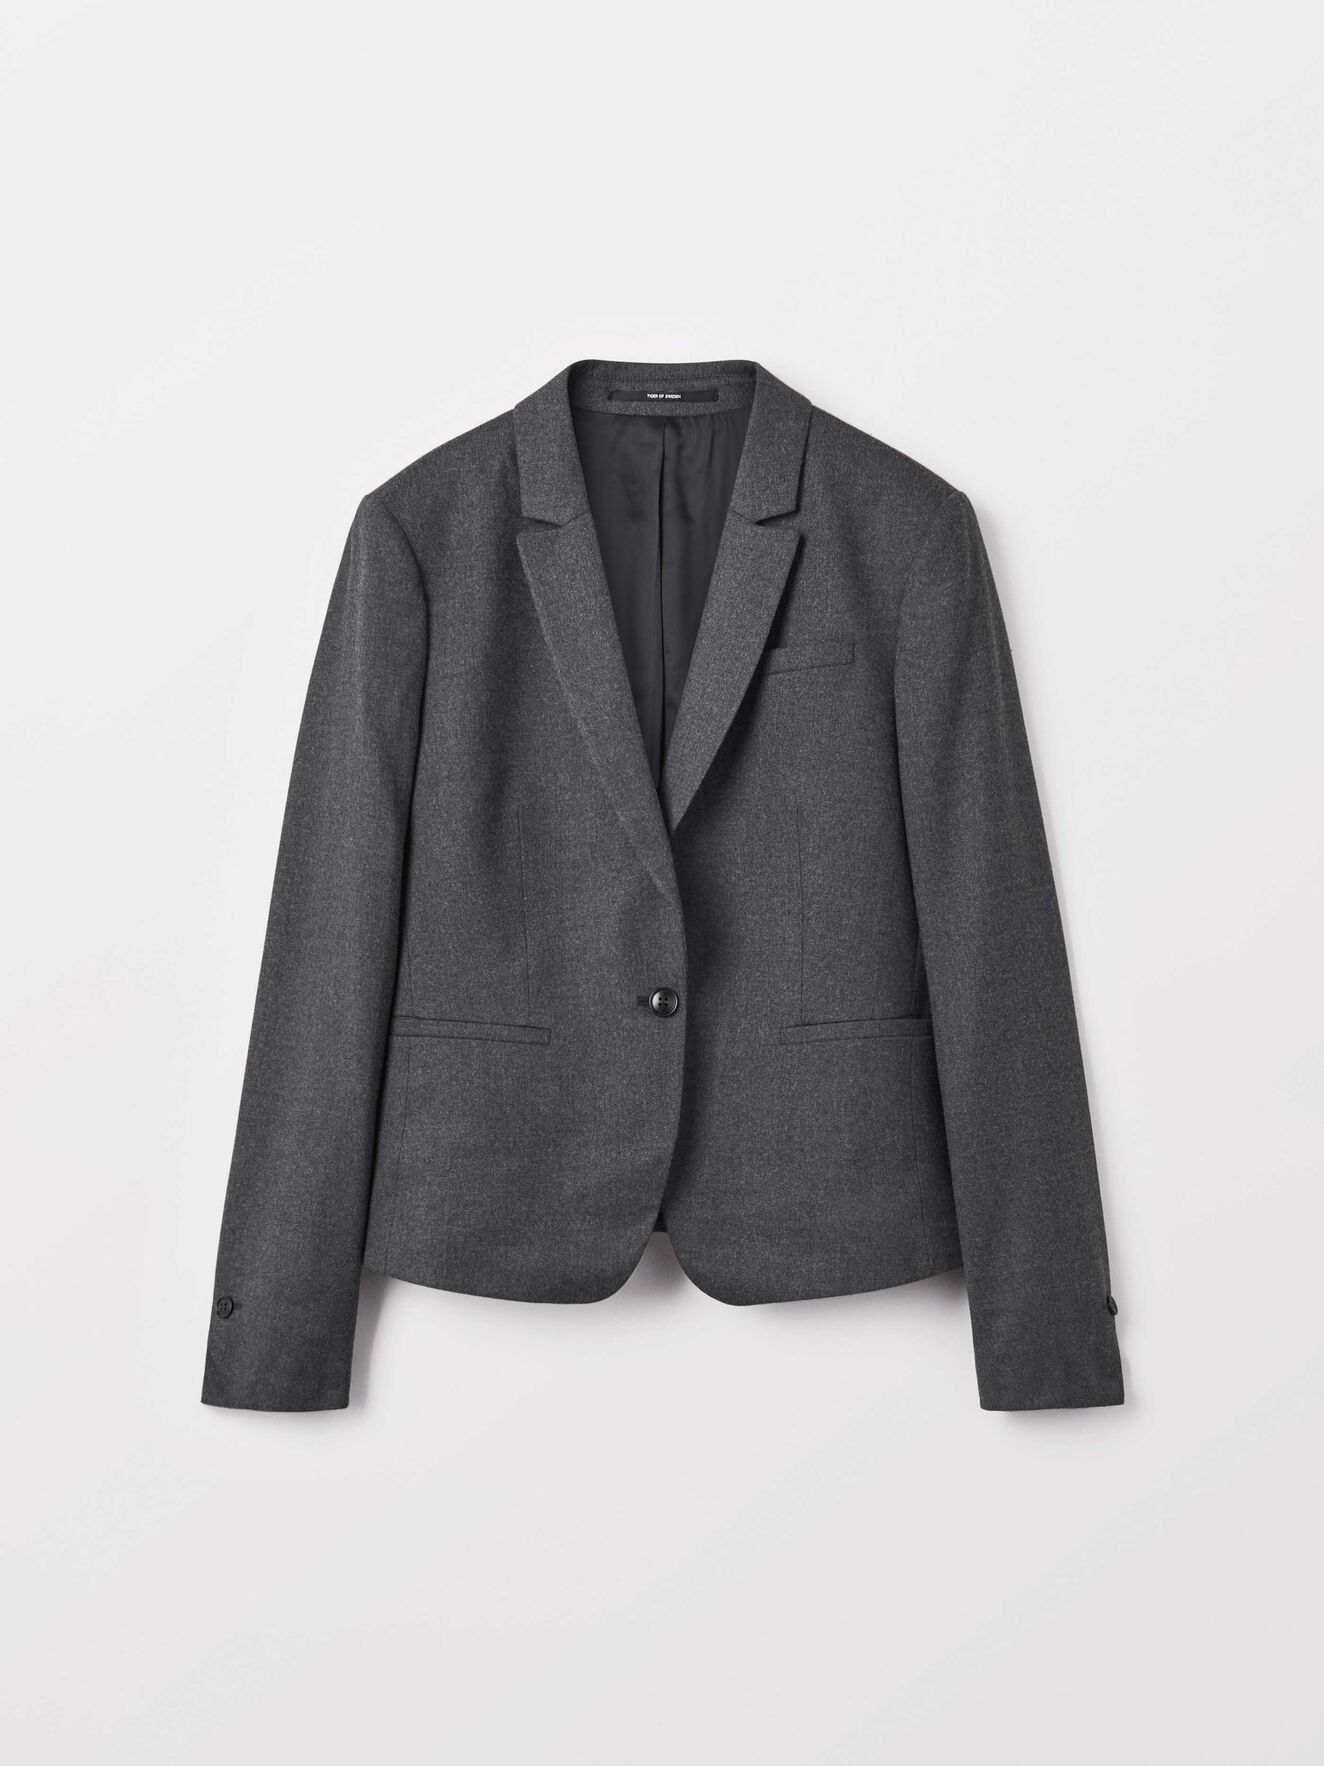 Kana 2 Blazer in Med Grey Mel from Tiger of Sweden